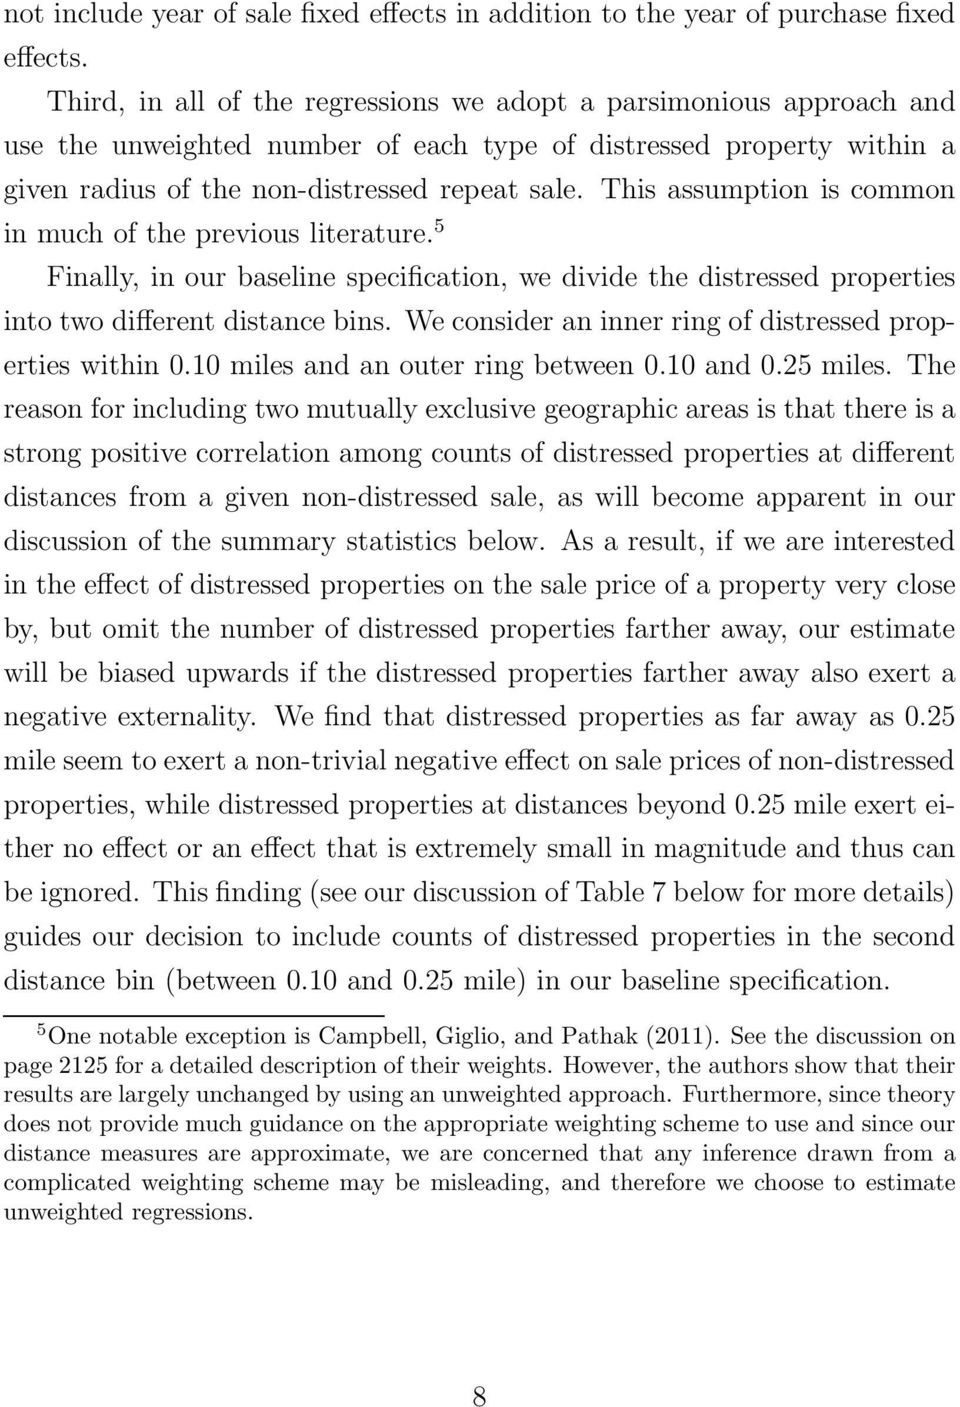 This assumption is common in much of the previous literature. 5 Finally, in our baseline specification, we divide the distressed properties into two different distance bins.